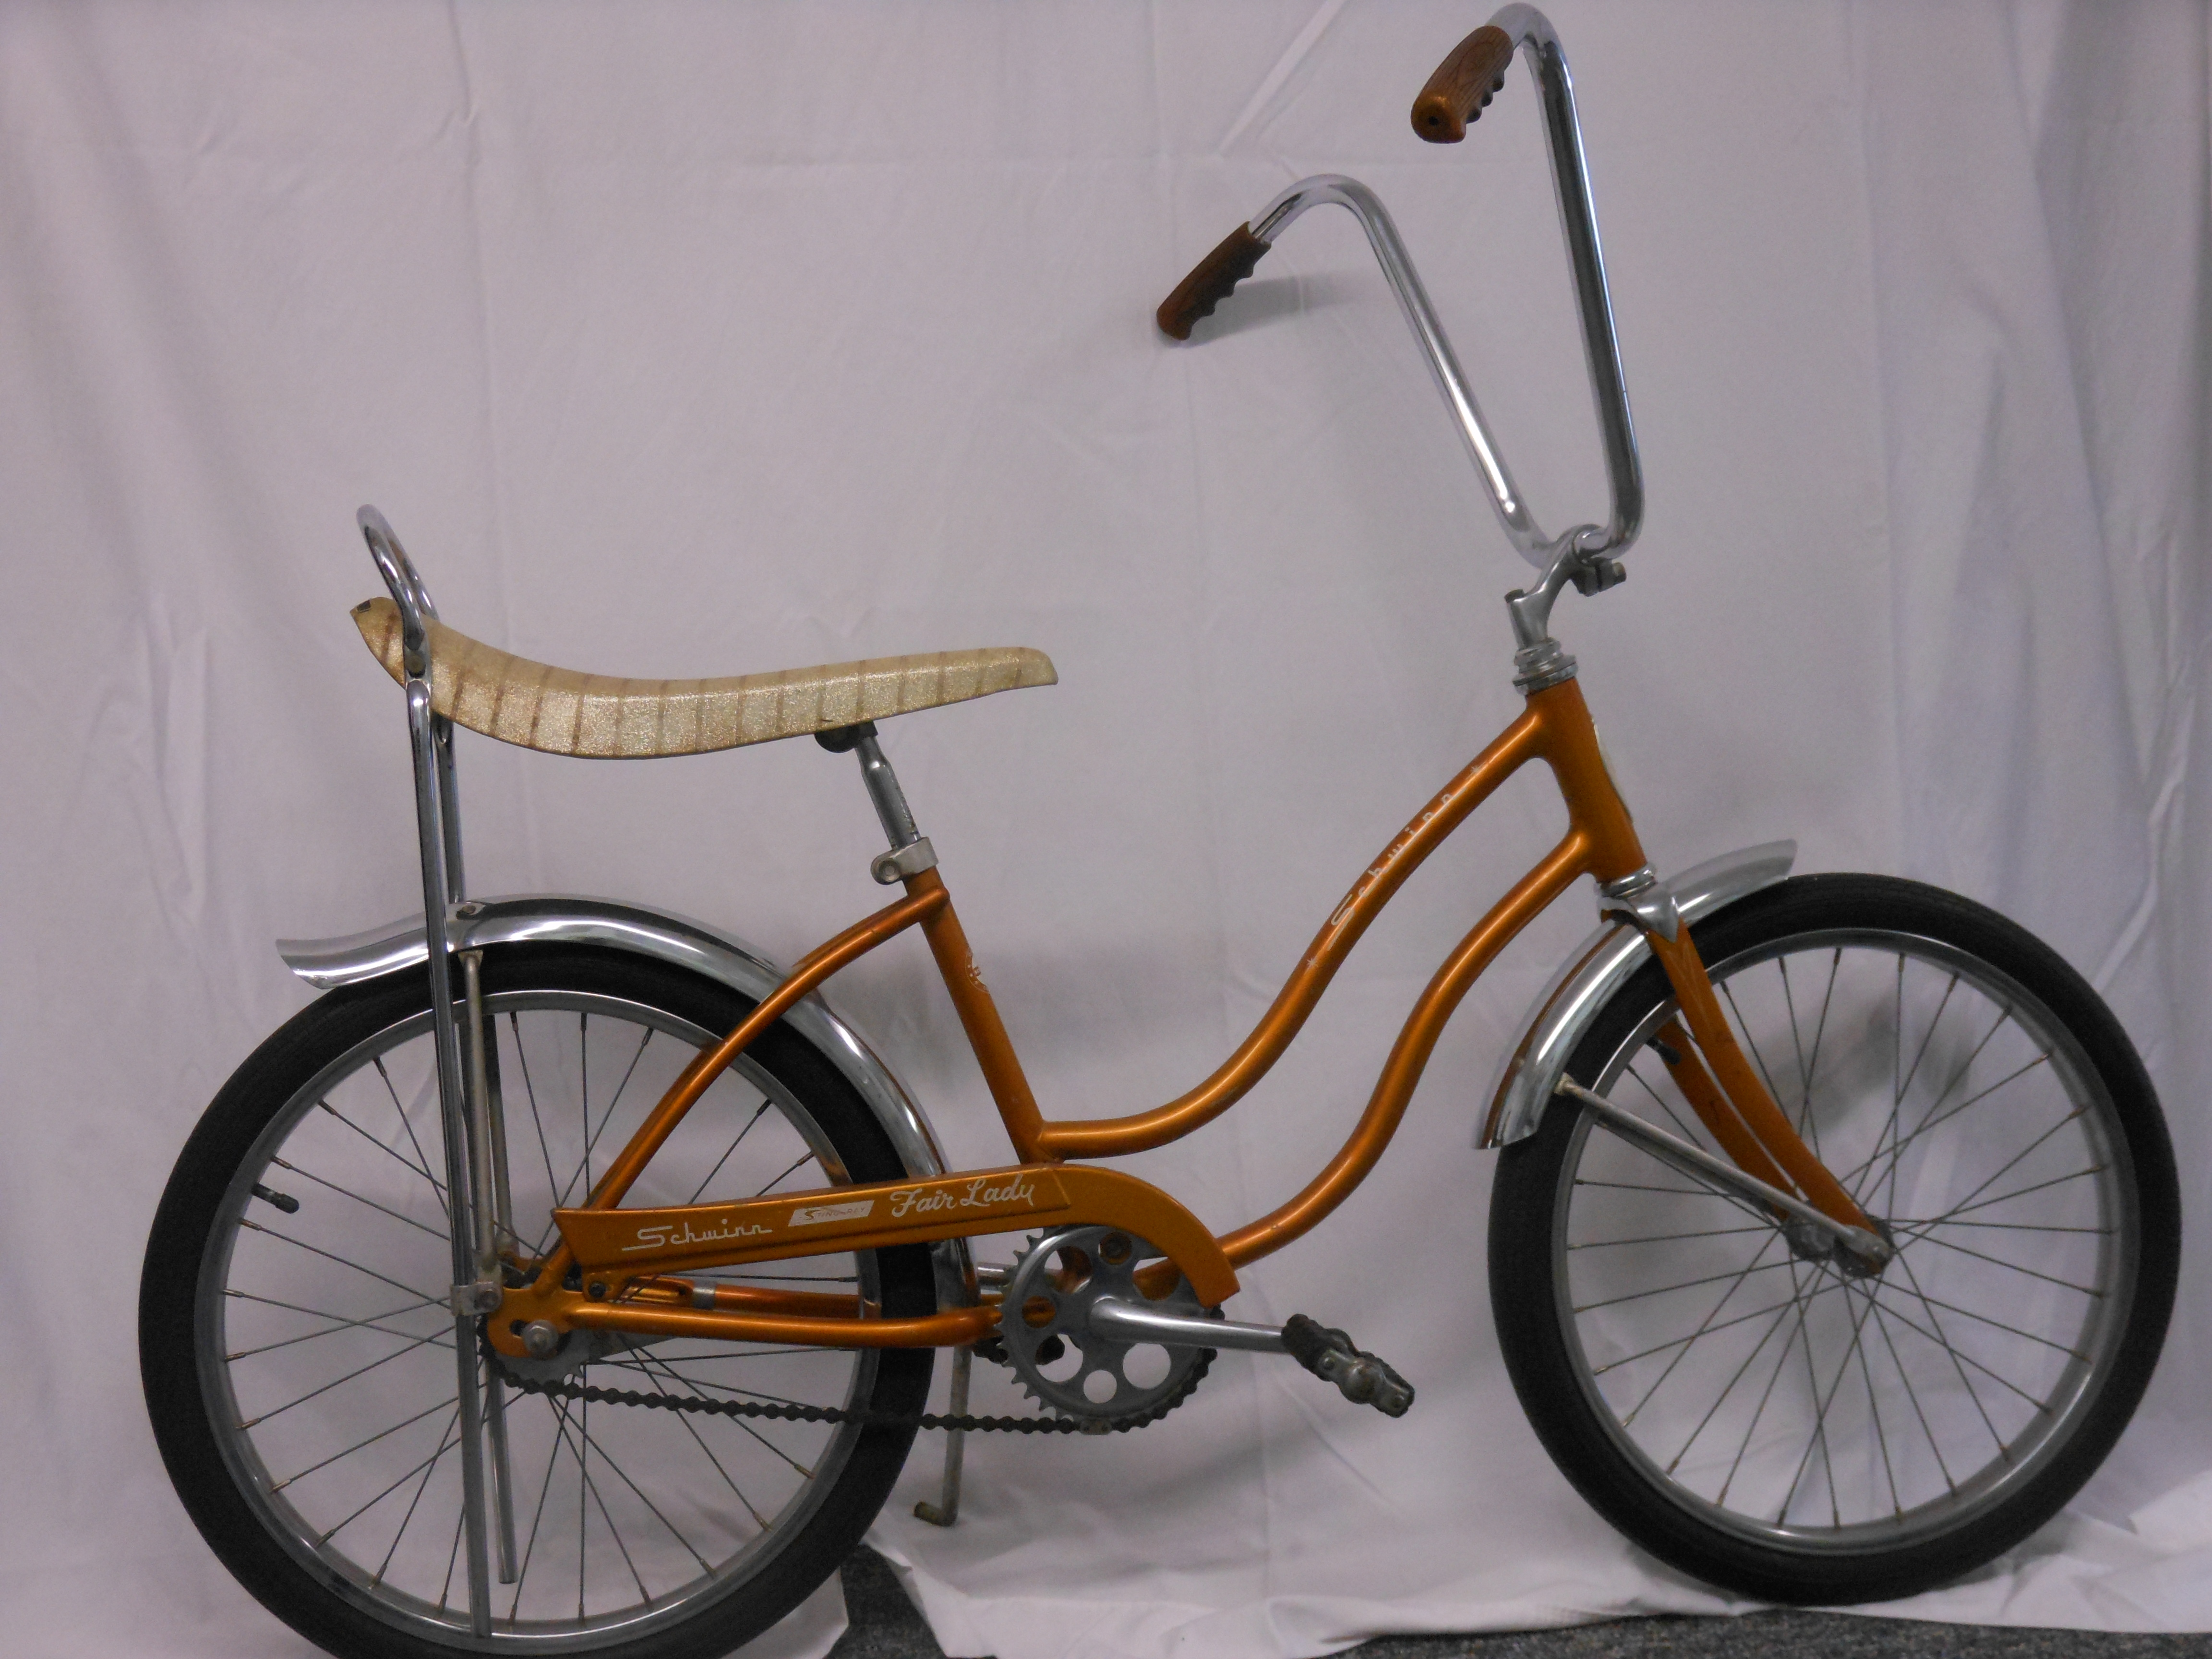 293c45a58fa This is one popular model and is showcased on our sales floor. At least once  a week, we have visitors to the shop comment about how they had a bike (or  one ...